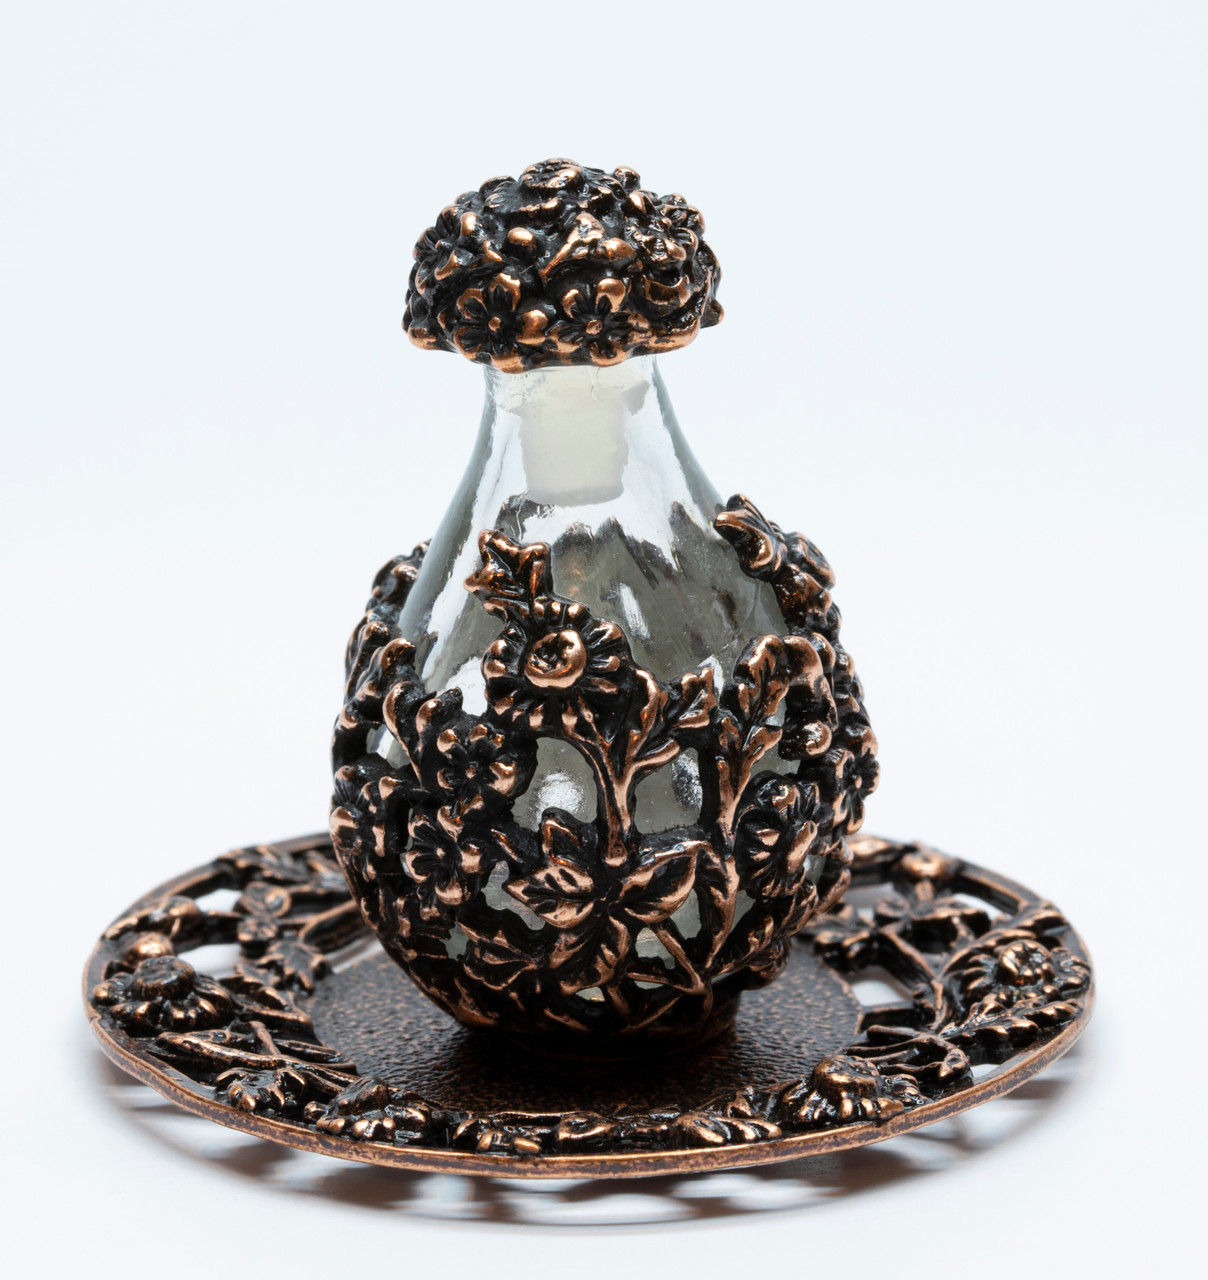 Copper with Clear Glass Victorian Tear Bottle - Shown with Optional Copper Tray  - Sold Separately